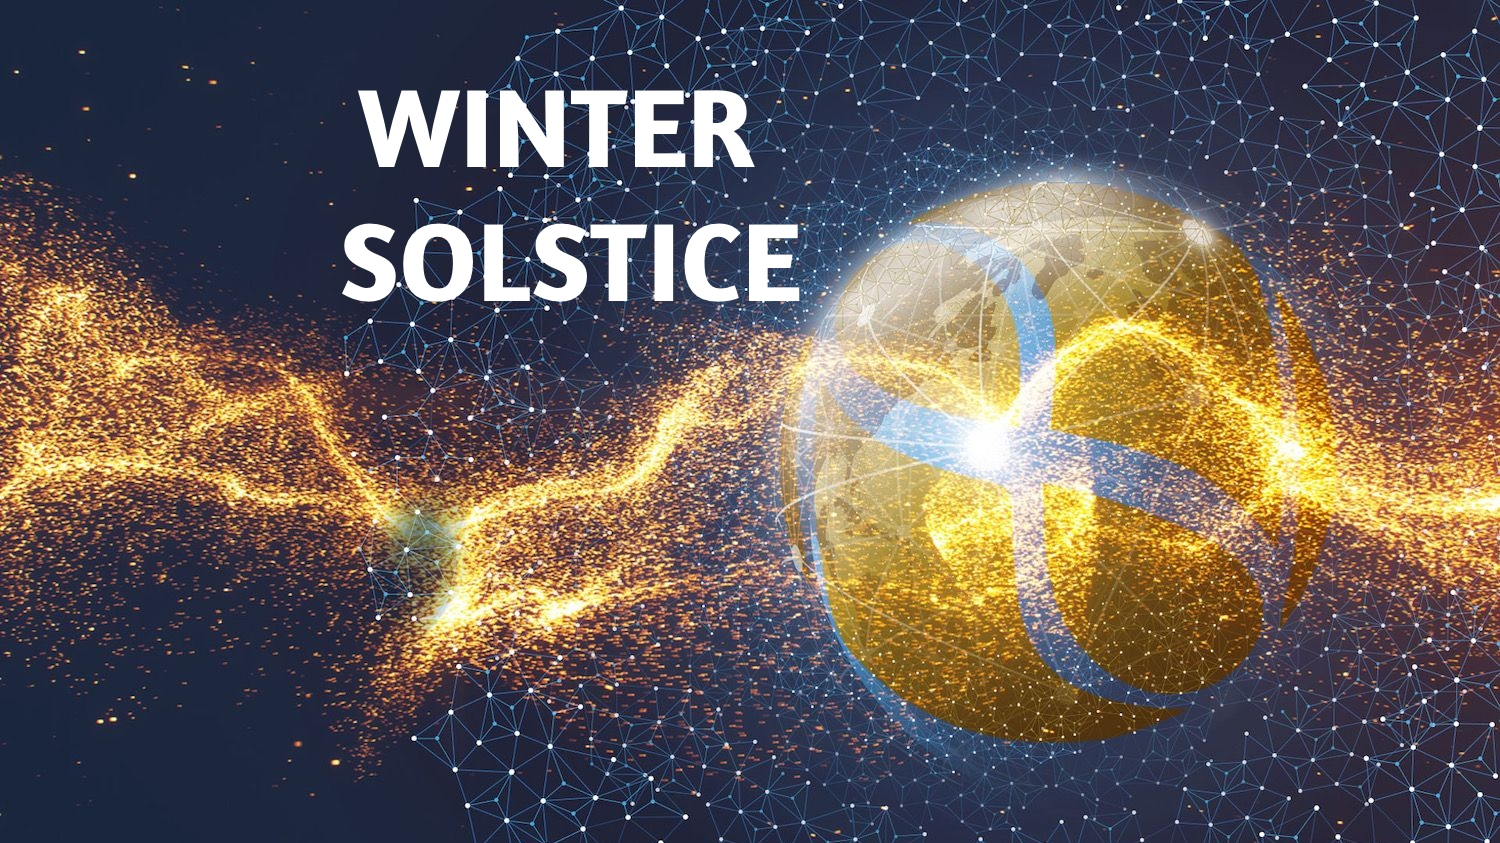 VIDEO: WINTER SOLSTICE MEDITATION (45 MINS)